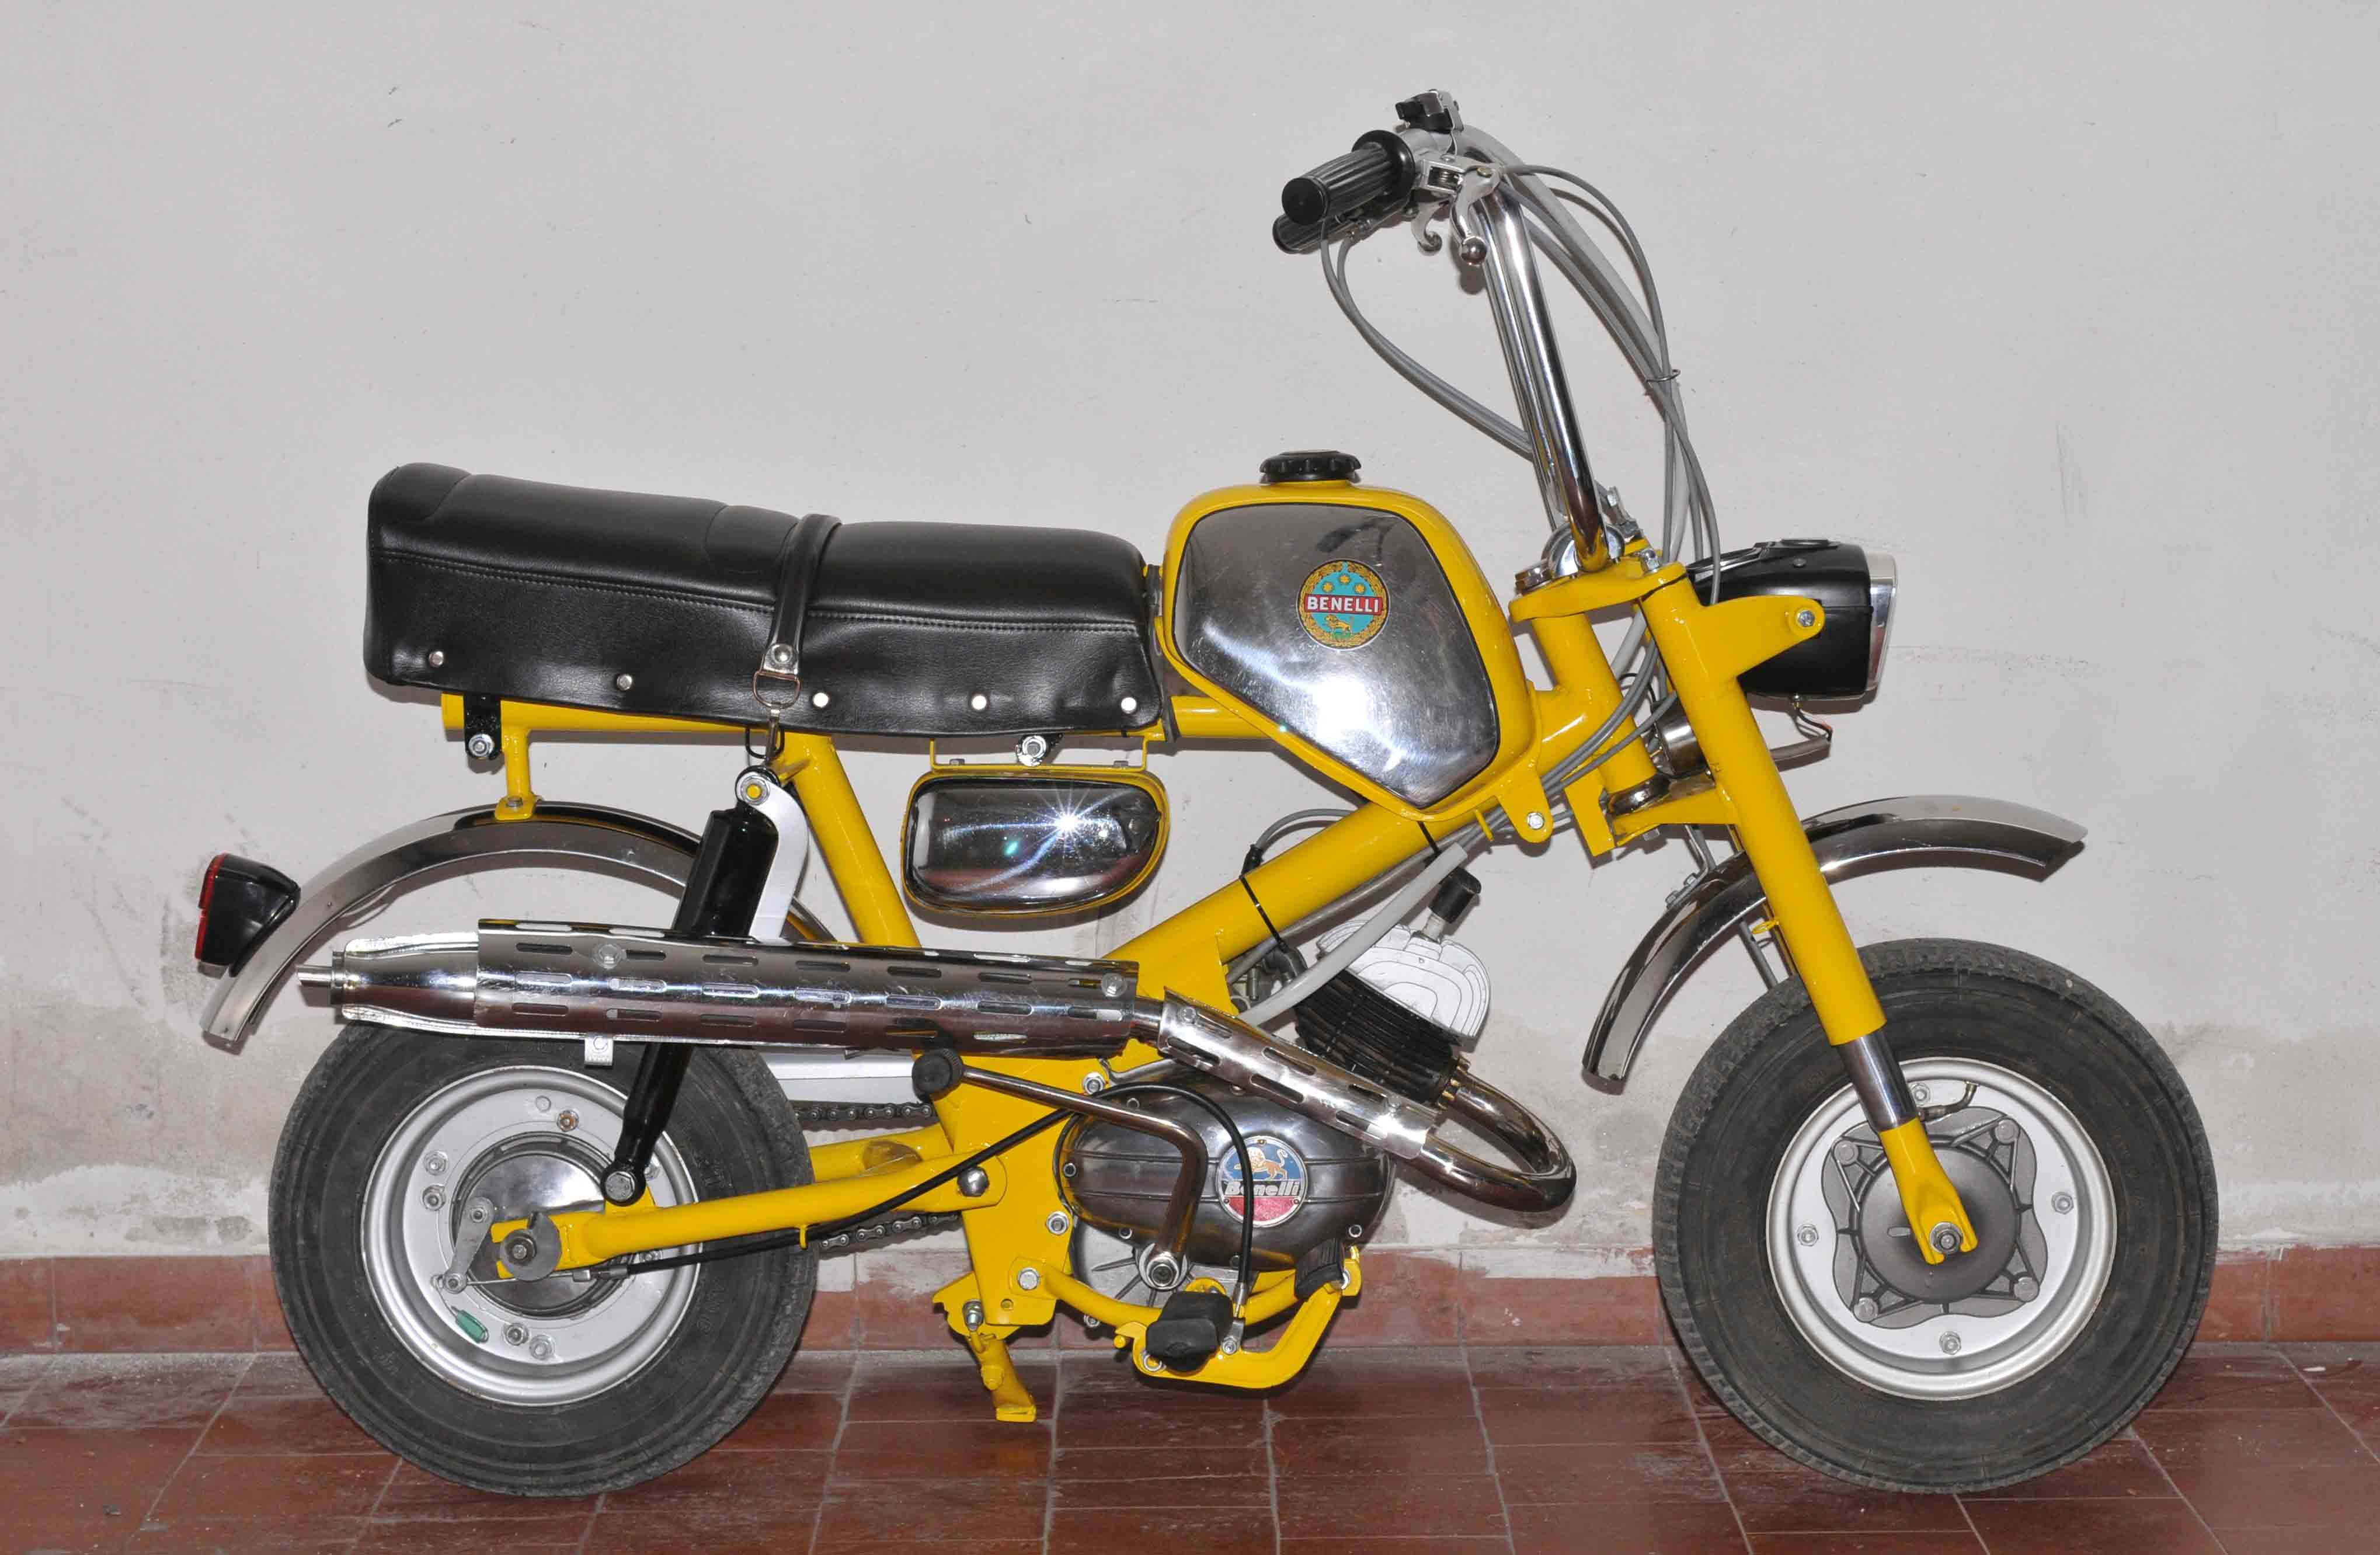 benelli mini bike the first bike for me to ride. Black Bedroom Furniture Sets. Home Design Ideas